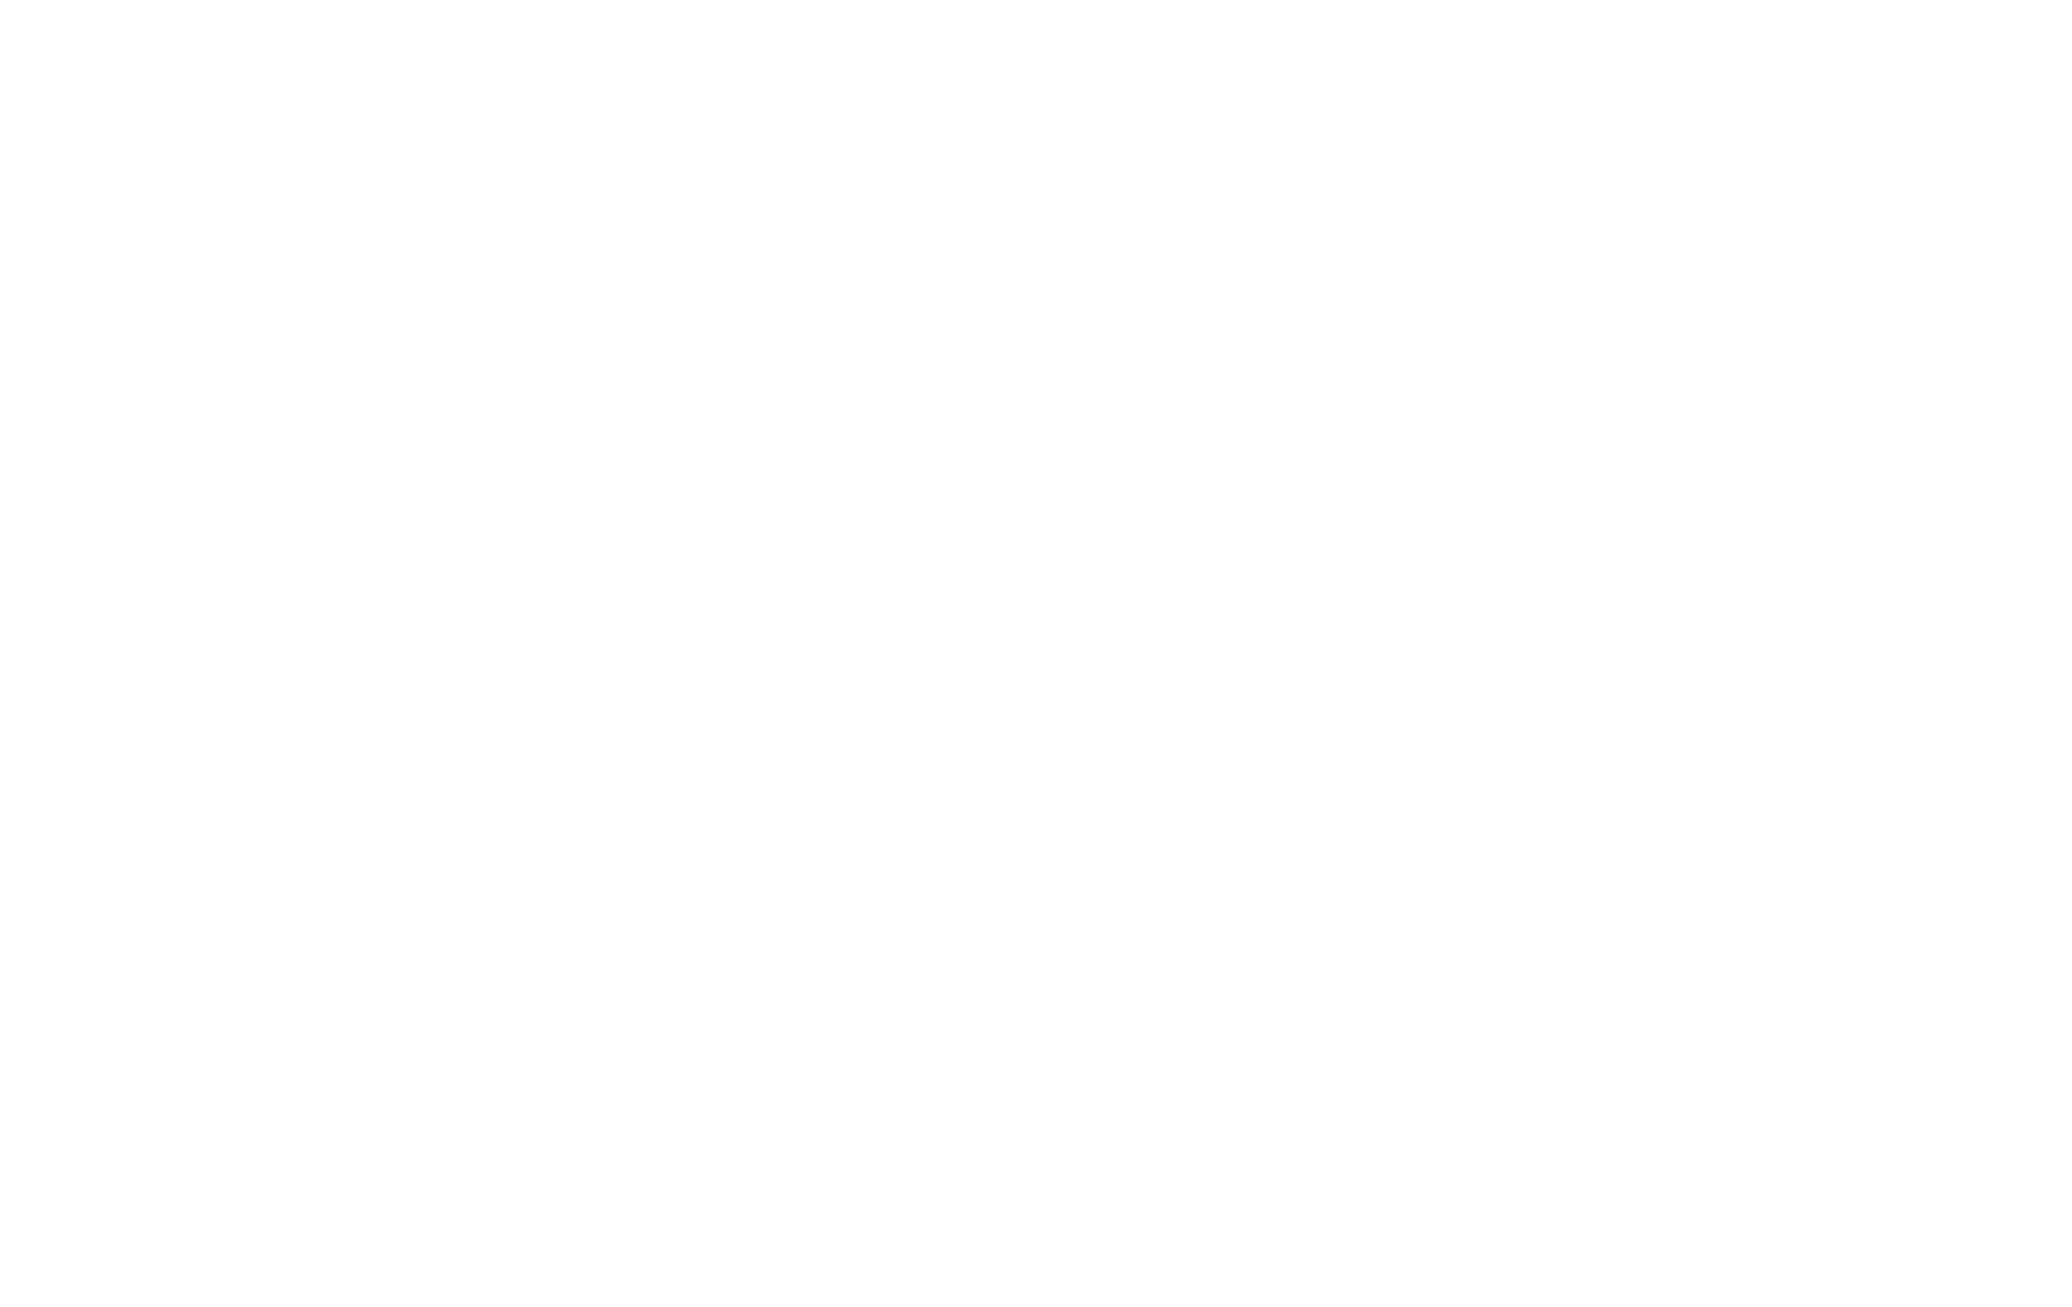 Website Logos_v03 Dometic.png